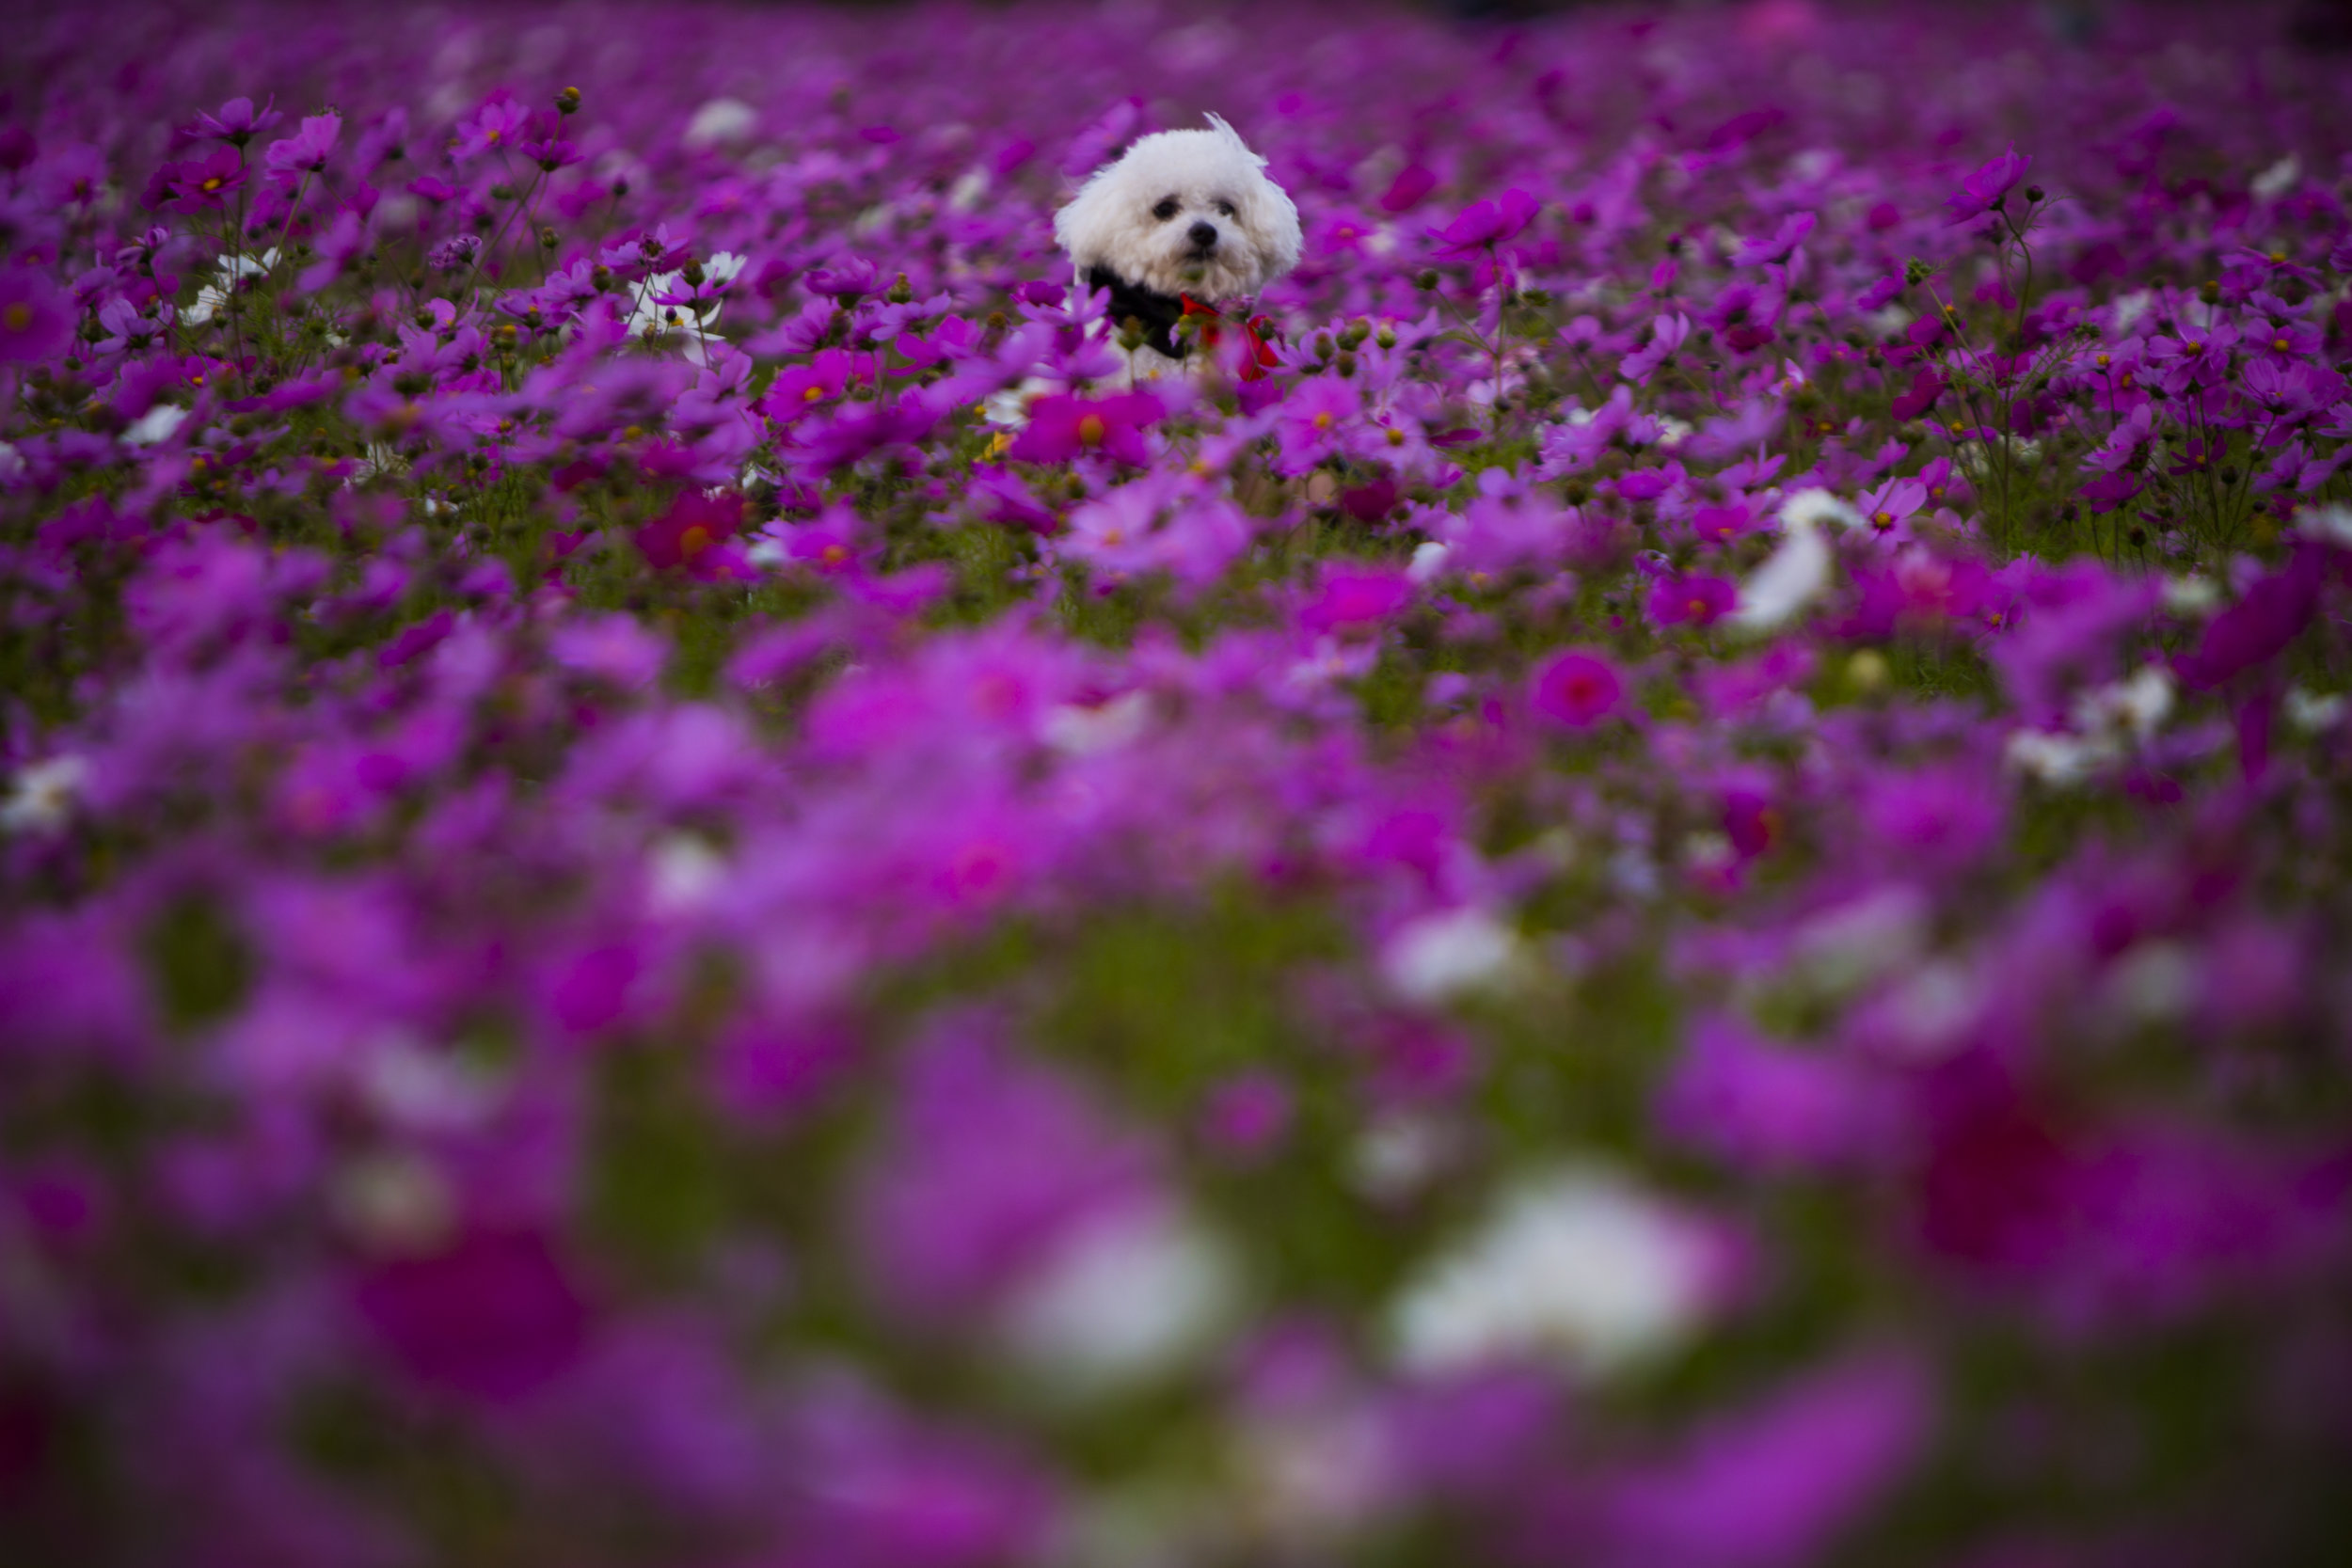 """If the dog stood on its own the flowers would have completely covered him. But the dog's owner insisted on a shot of """"Blancito's"""" head popping over the magenta-colored field. And funny enough the owner, gone unnoticed in this photo, kneels as close to the ground as possible to hold Blancito over her head."""